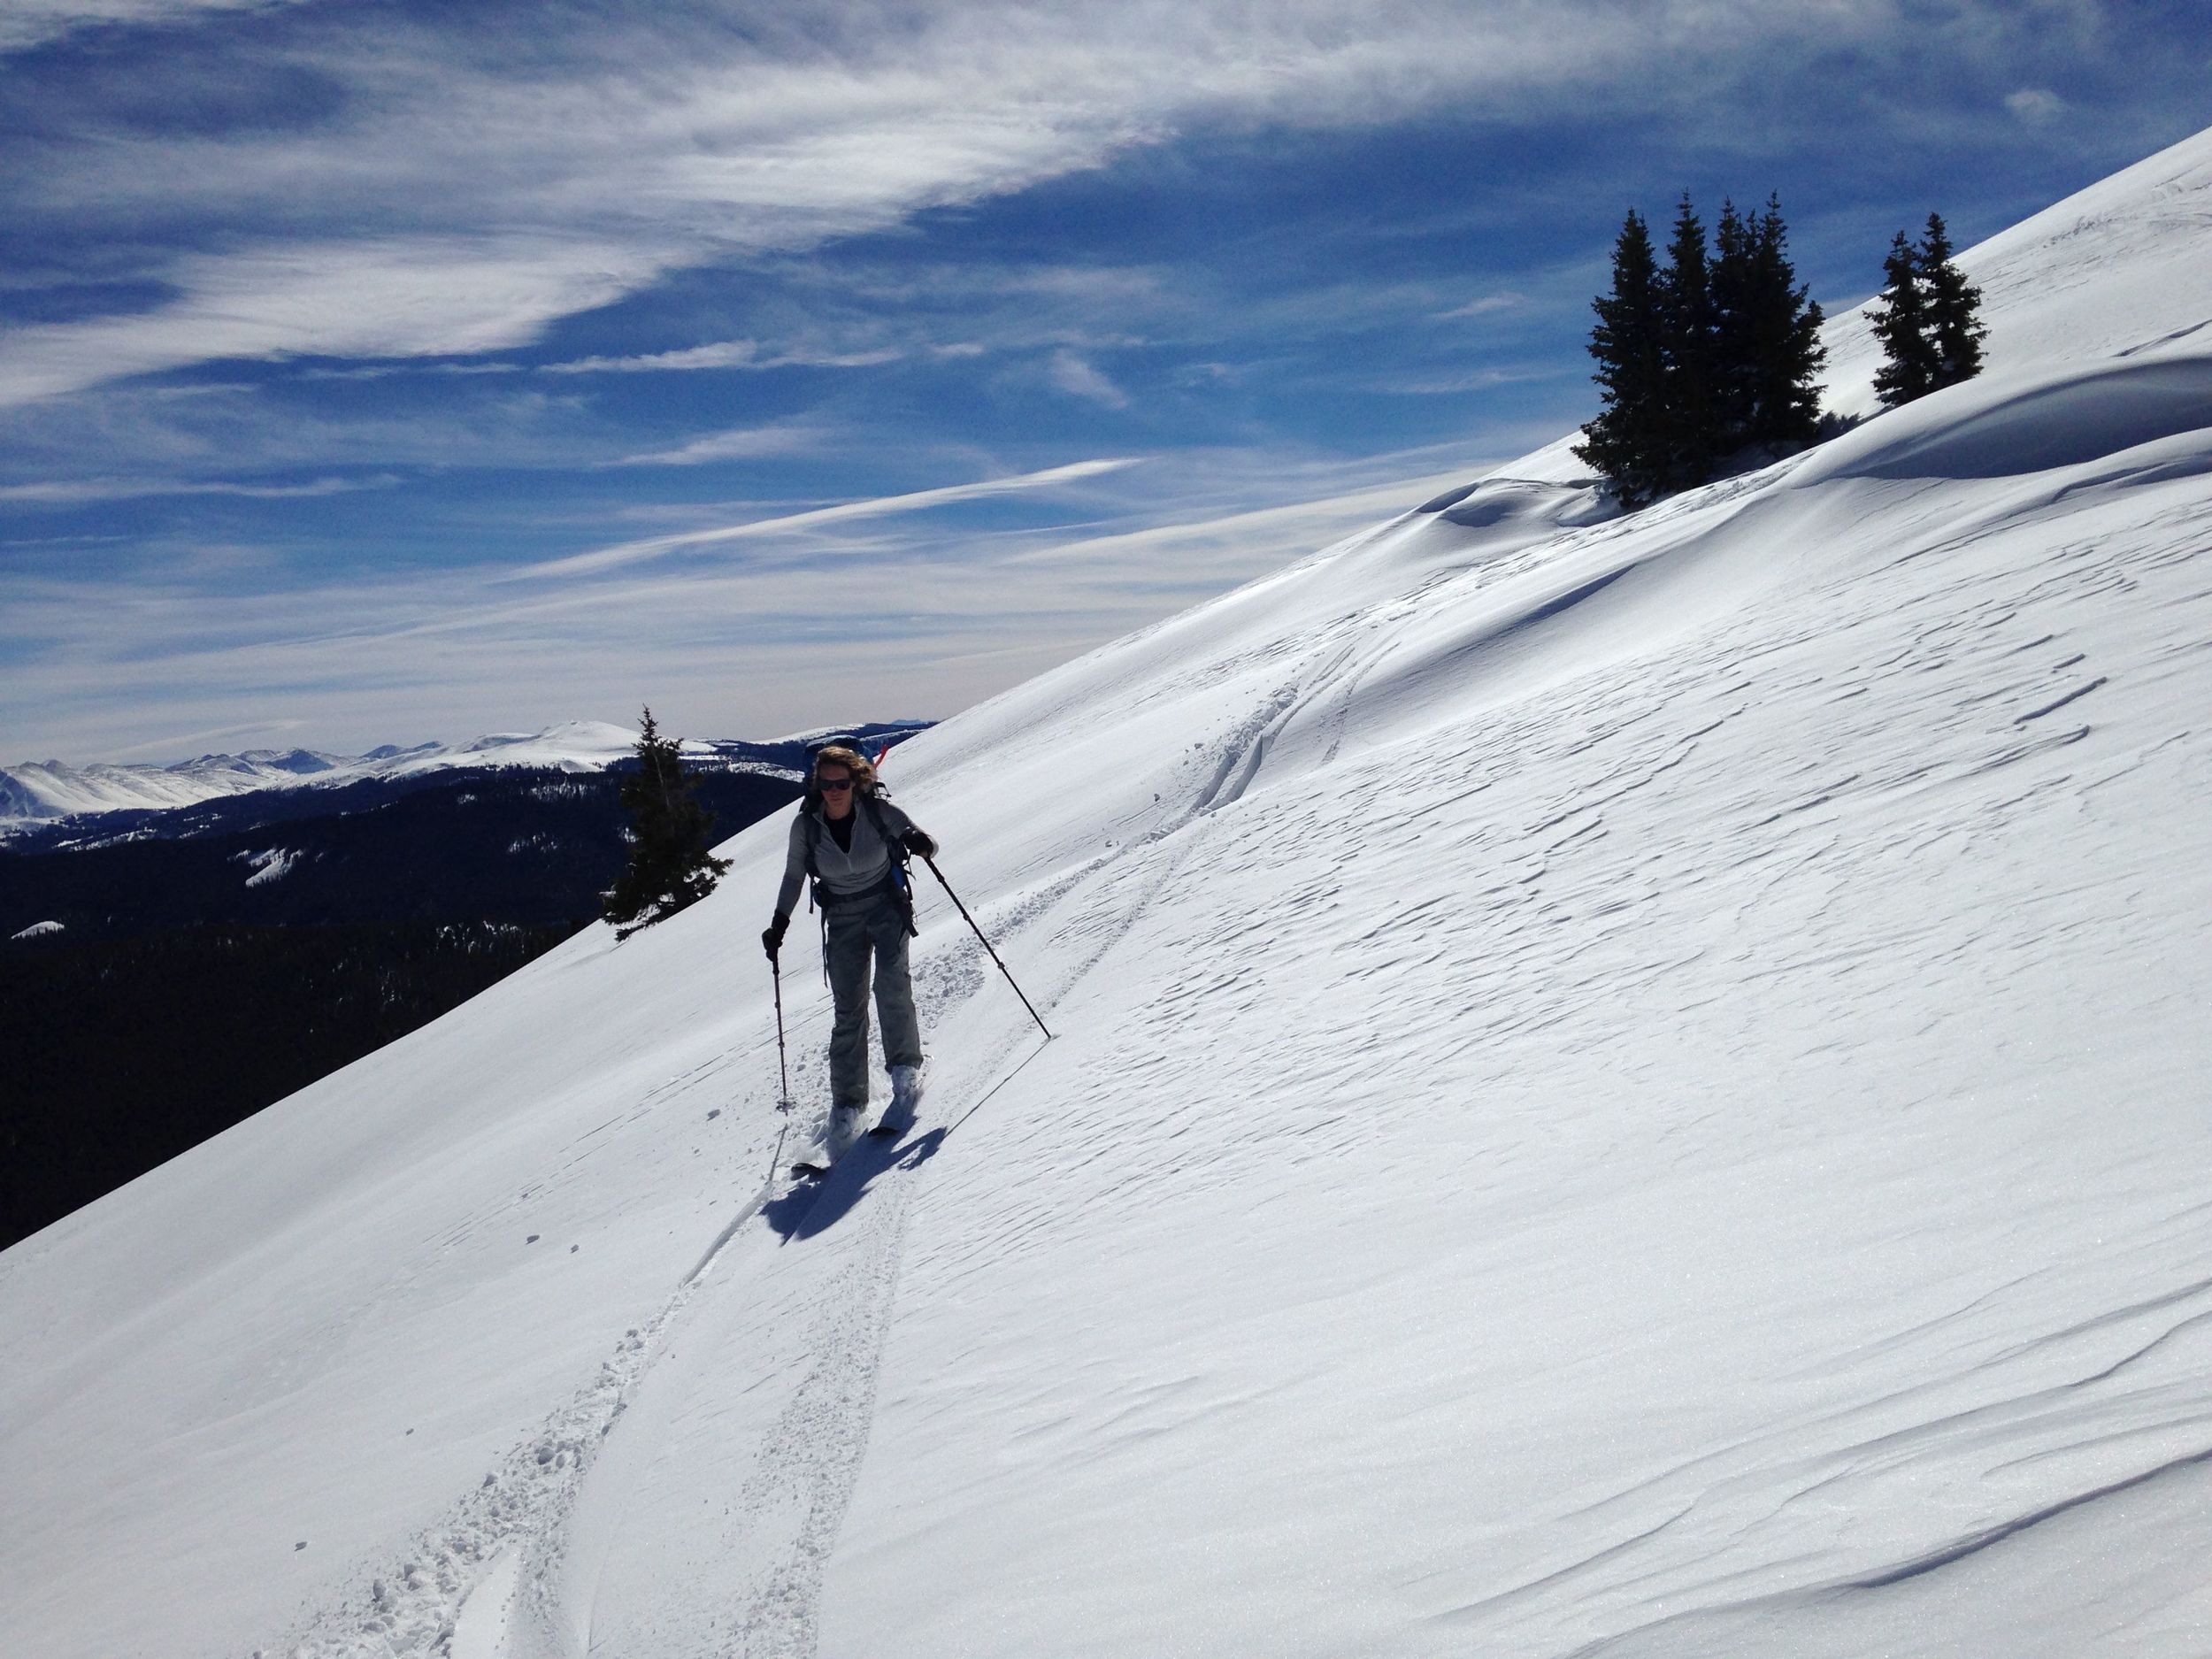 skiing on shaky legs with a heavy pack